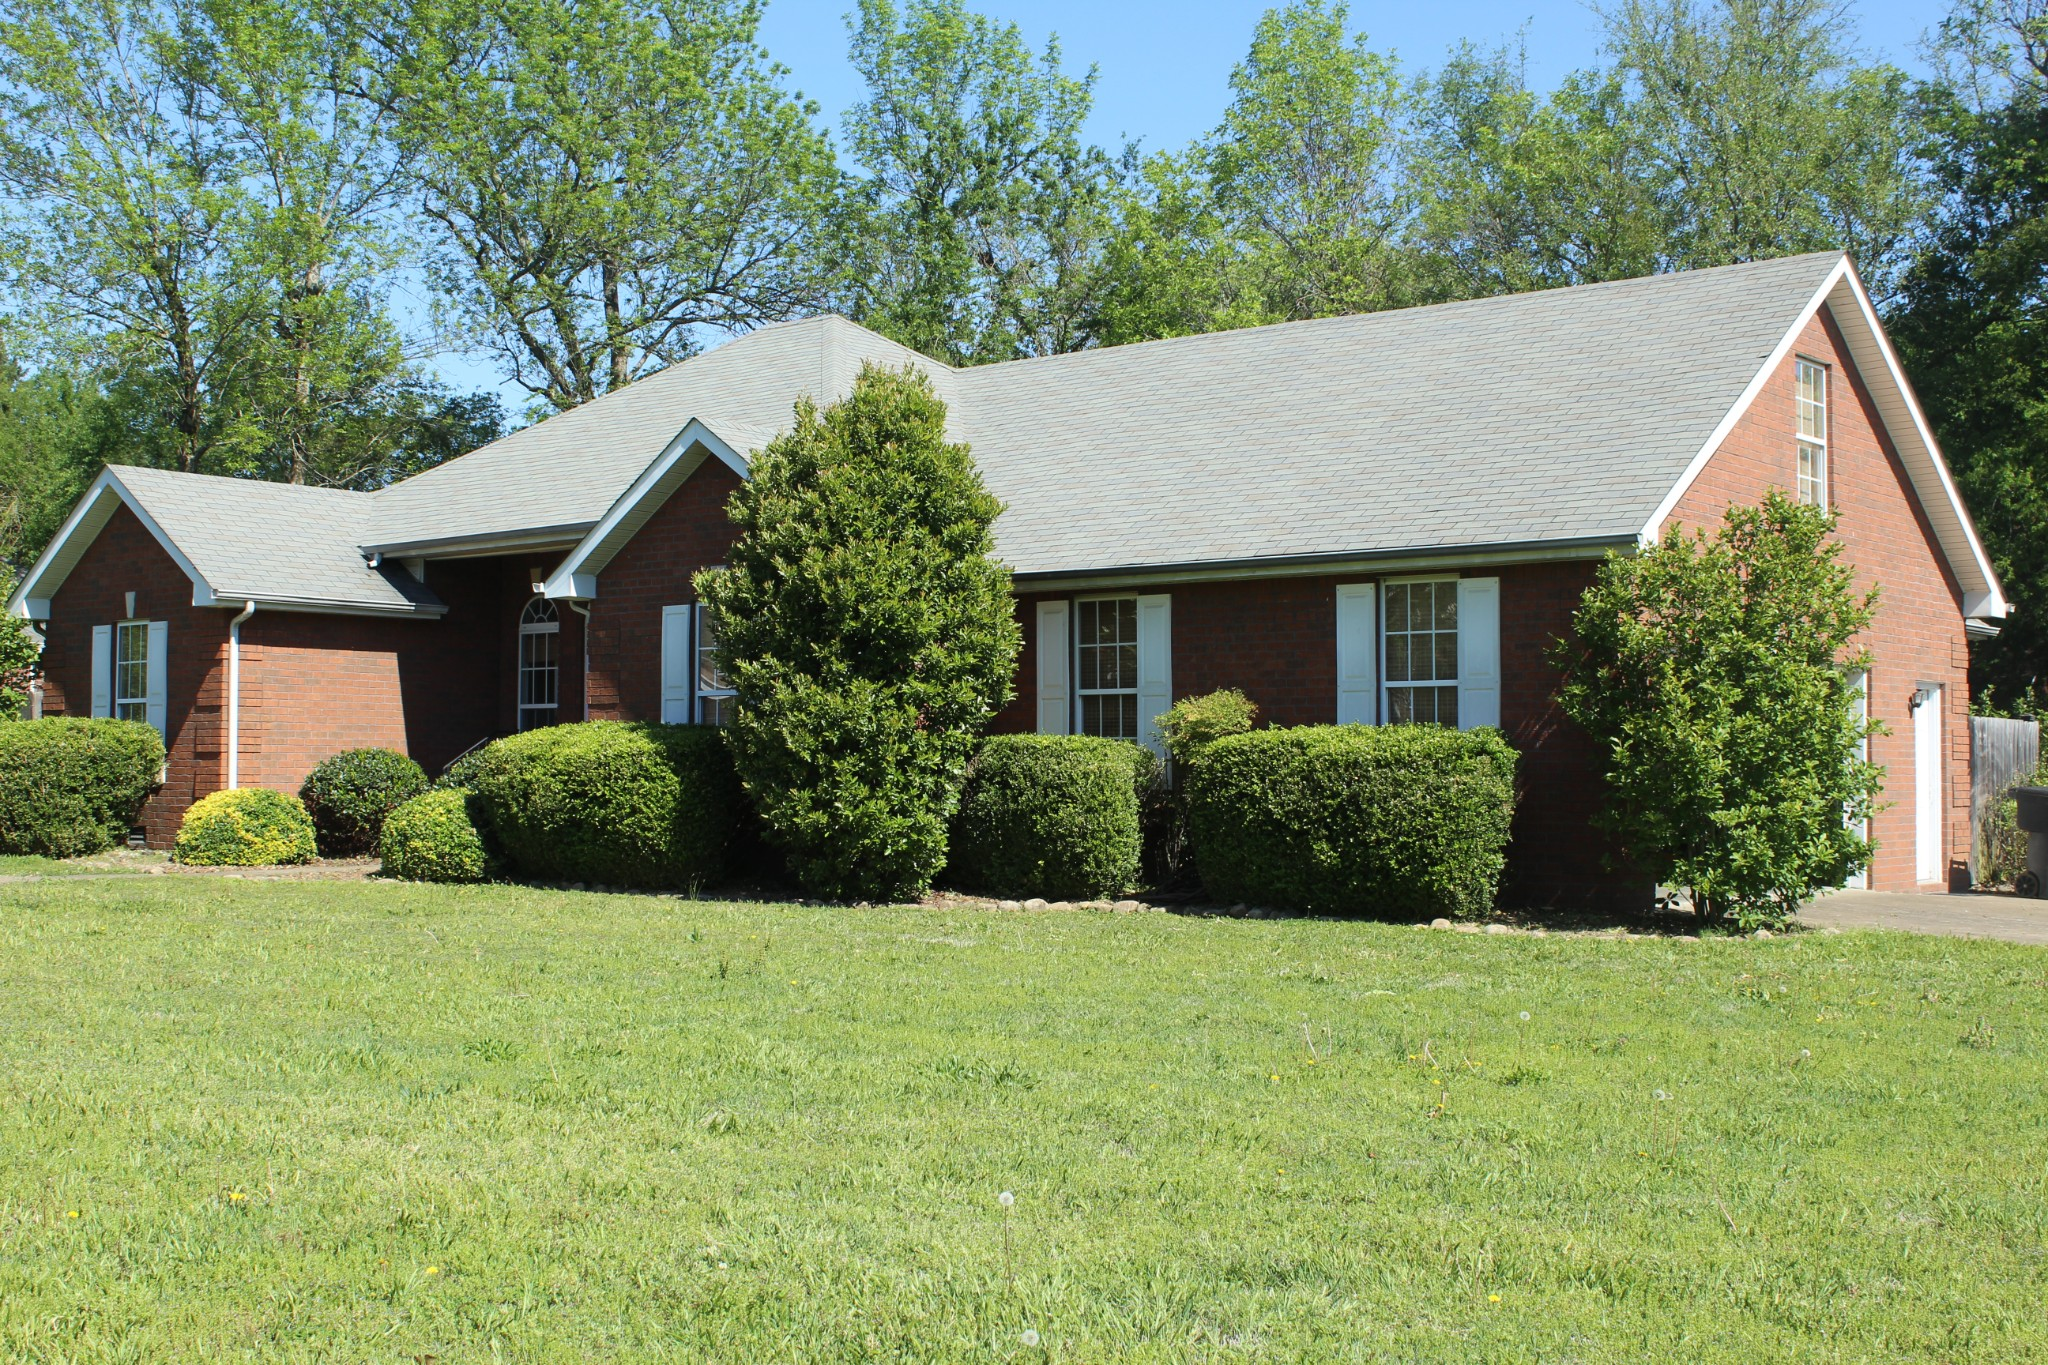 Established neighborhood, convenient to shopping, schools, interstate, one level brick home situated on large corner lot, fenced private backyard, mature trees, home features 3 bdrms, 2 baths,dining room w/trey ceiling, master bth w/trey ceiling and patio doors leading to deck, Living Room w/gas fireplace & builtin shelving, bonus room above garage, extra closets for storage. Estate Sale! Property being sold as-is.